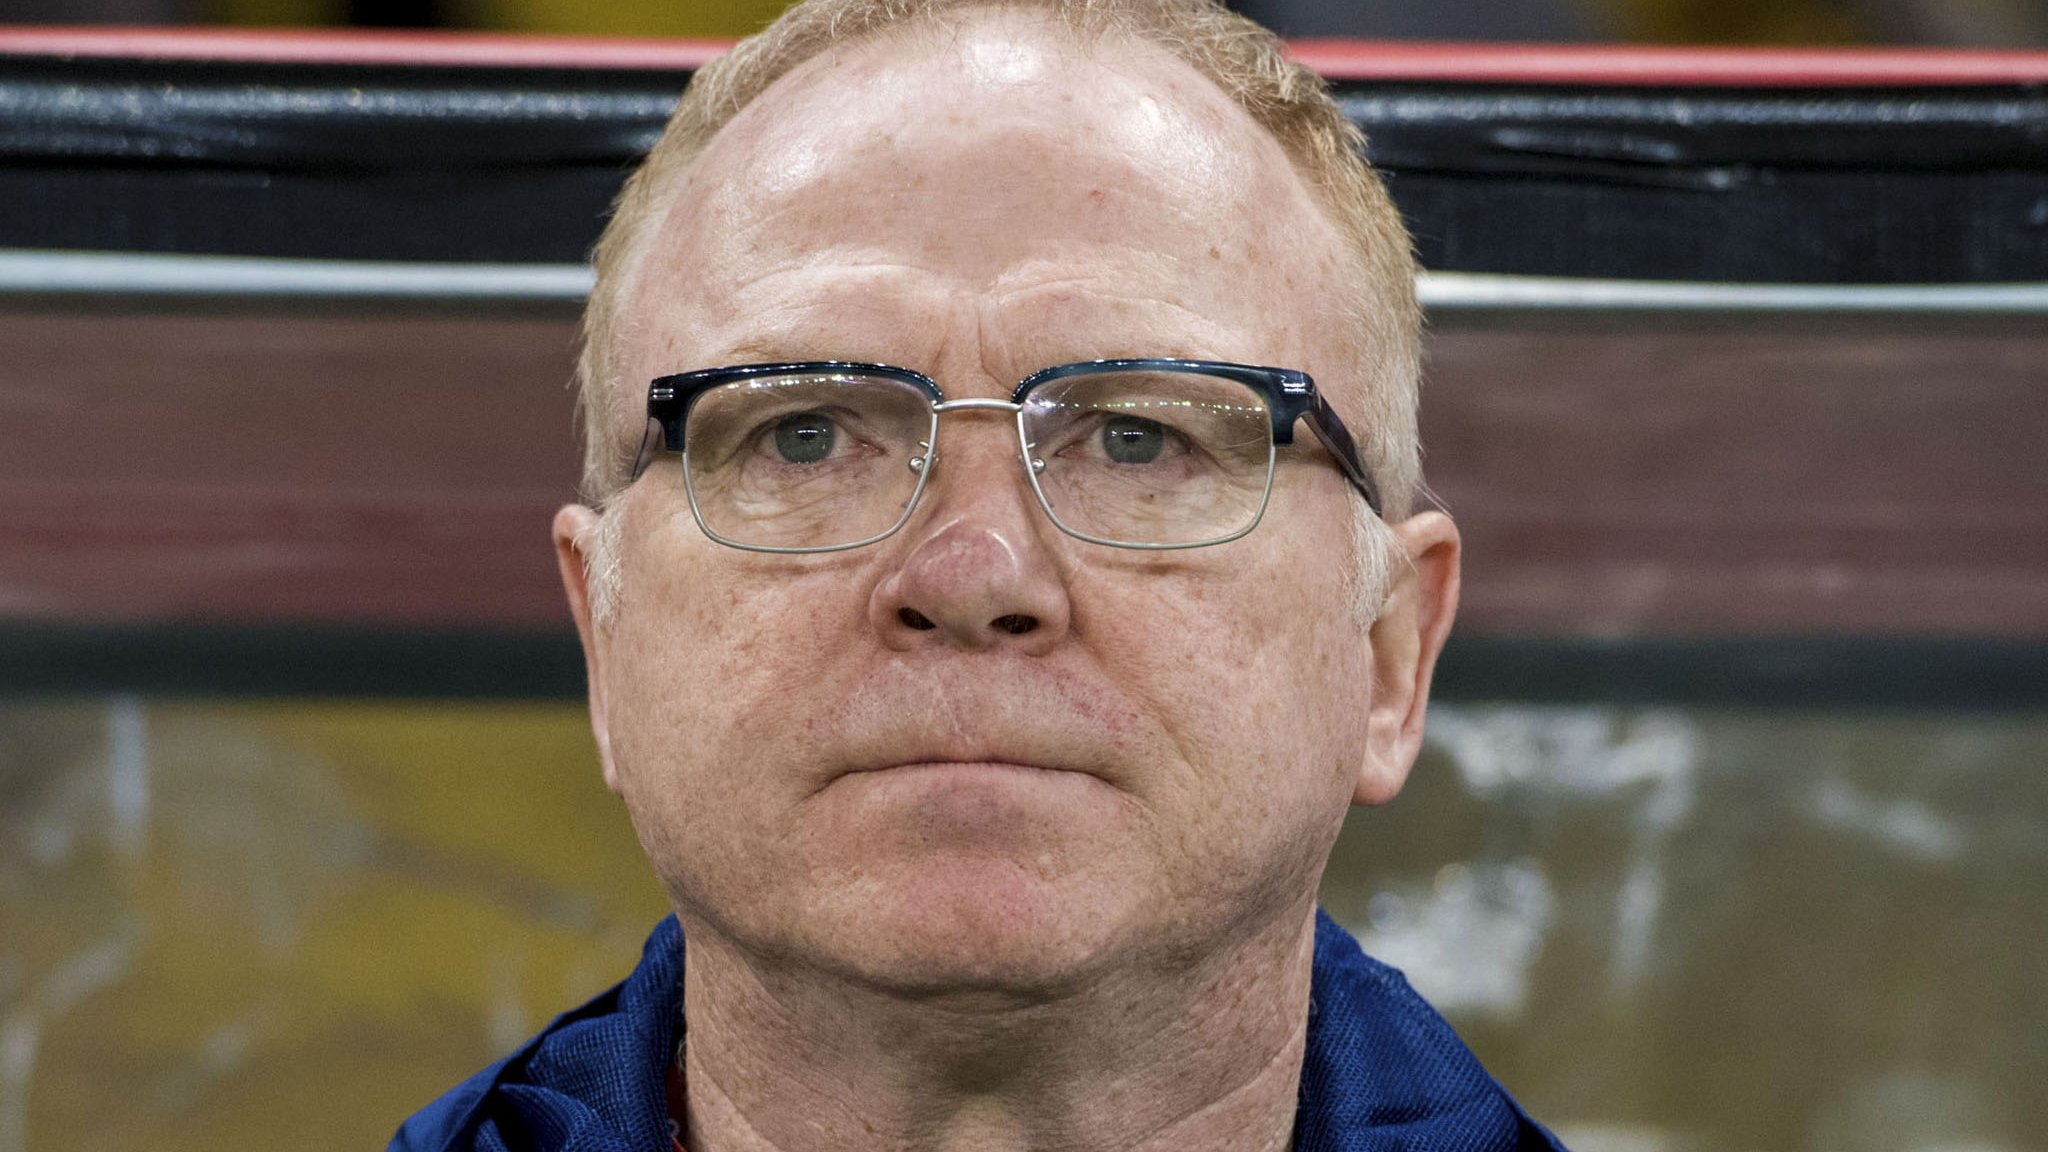 Alex McLeish 'must stay on' as Scotland manager - Craig Brown